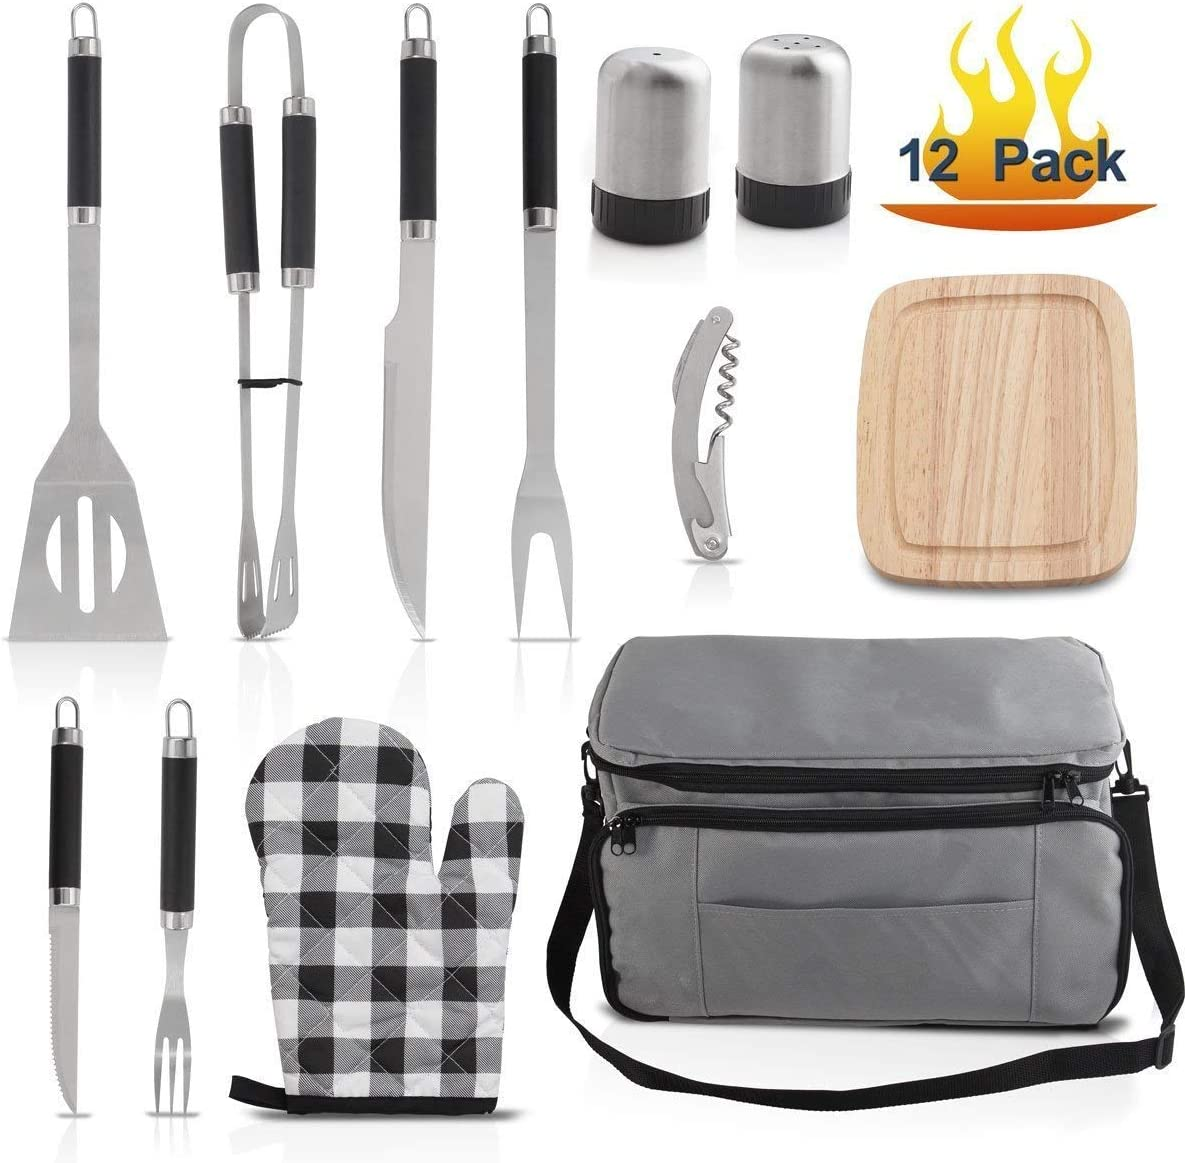 Grilljoy BBQ Grill Accessories Tool Set with 15 can Gray Insulated Cooler Bag – All-in-one BBQ Picnic Cooler Bag – 12pcs Stainless Steel Camping Utensil Kit For Outdoor Grilling – Prefect Gift for Man